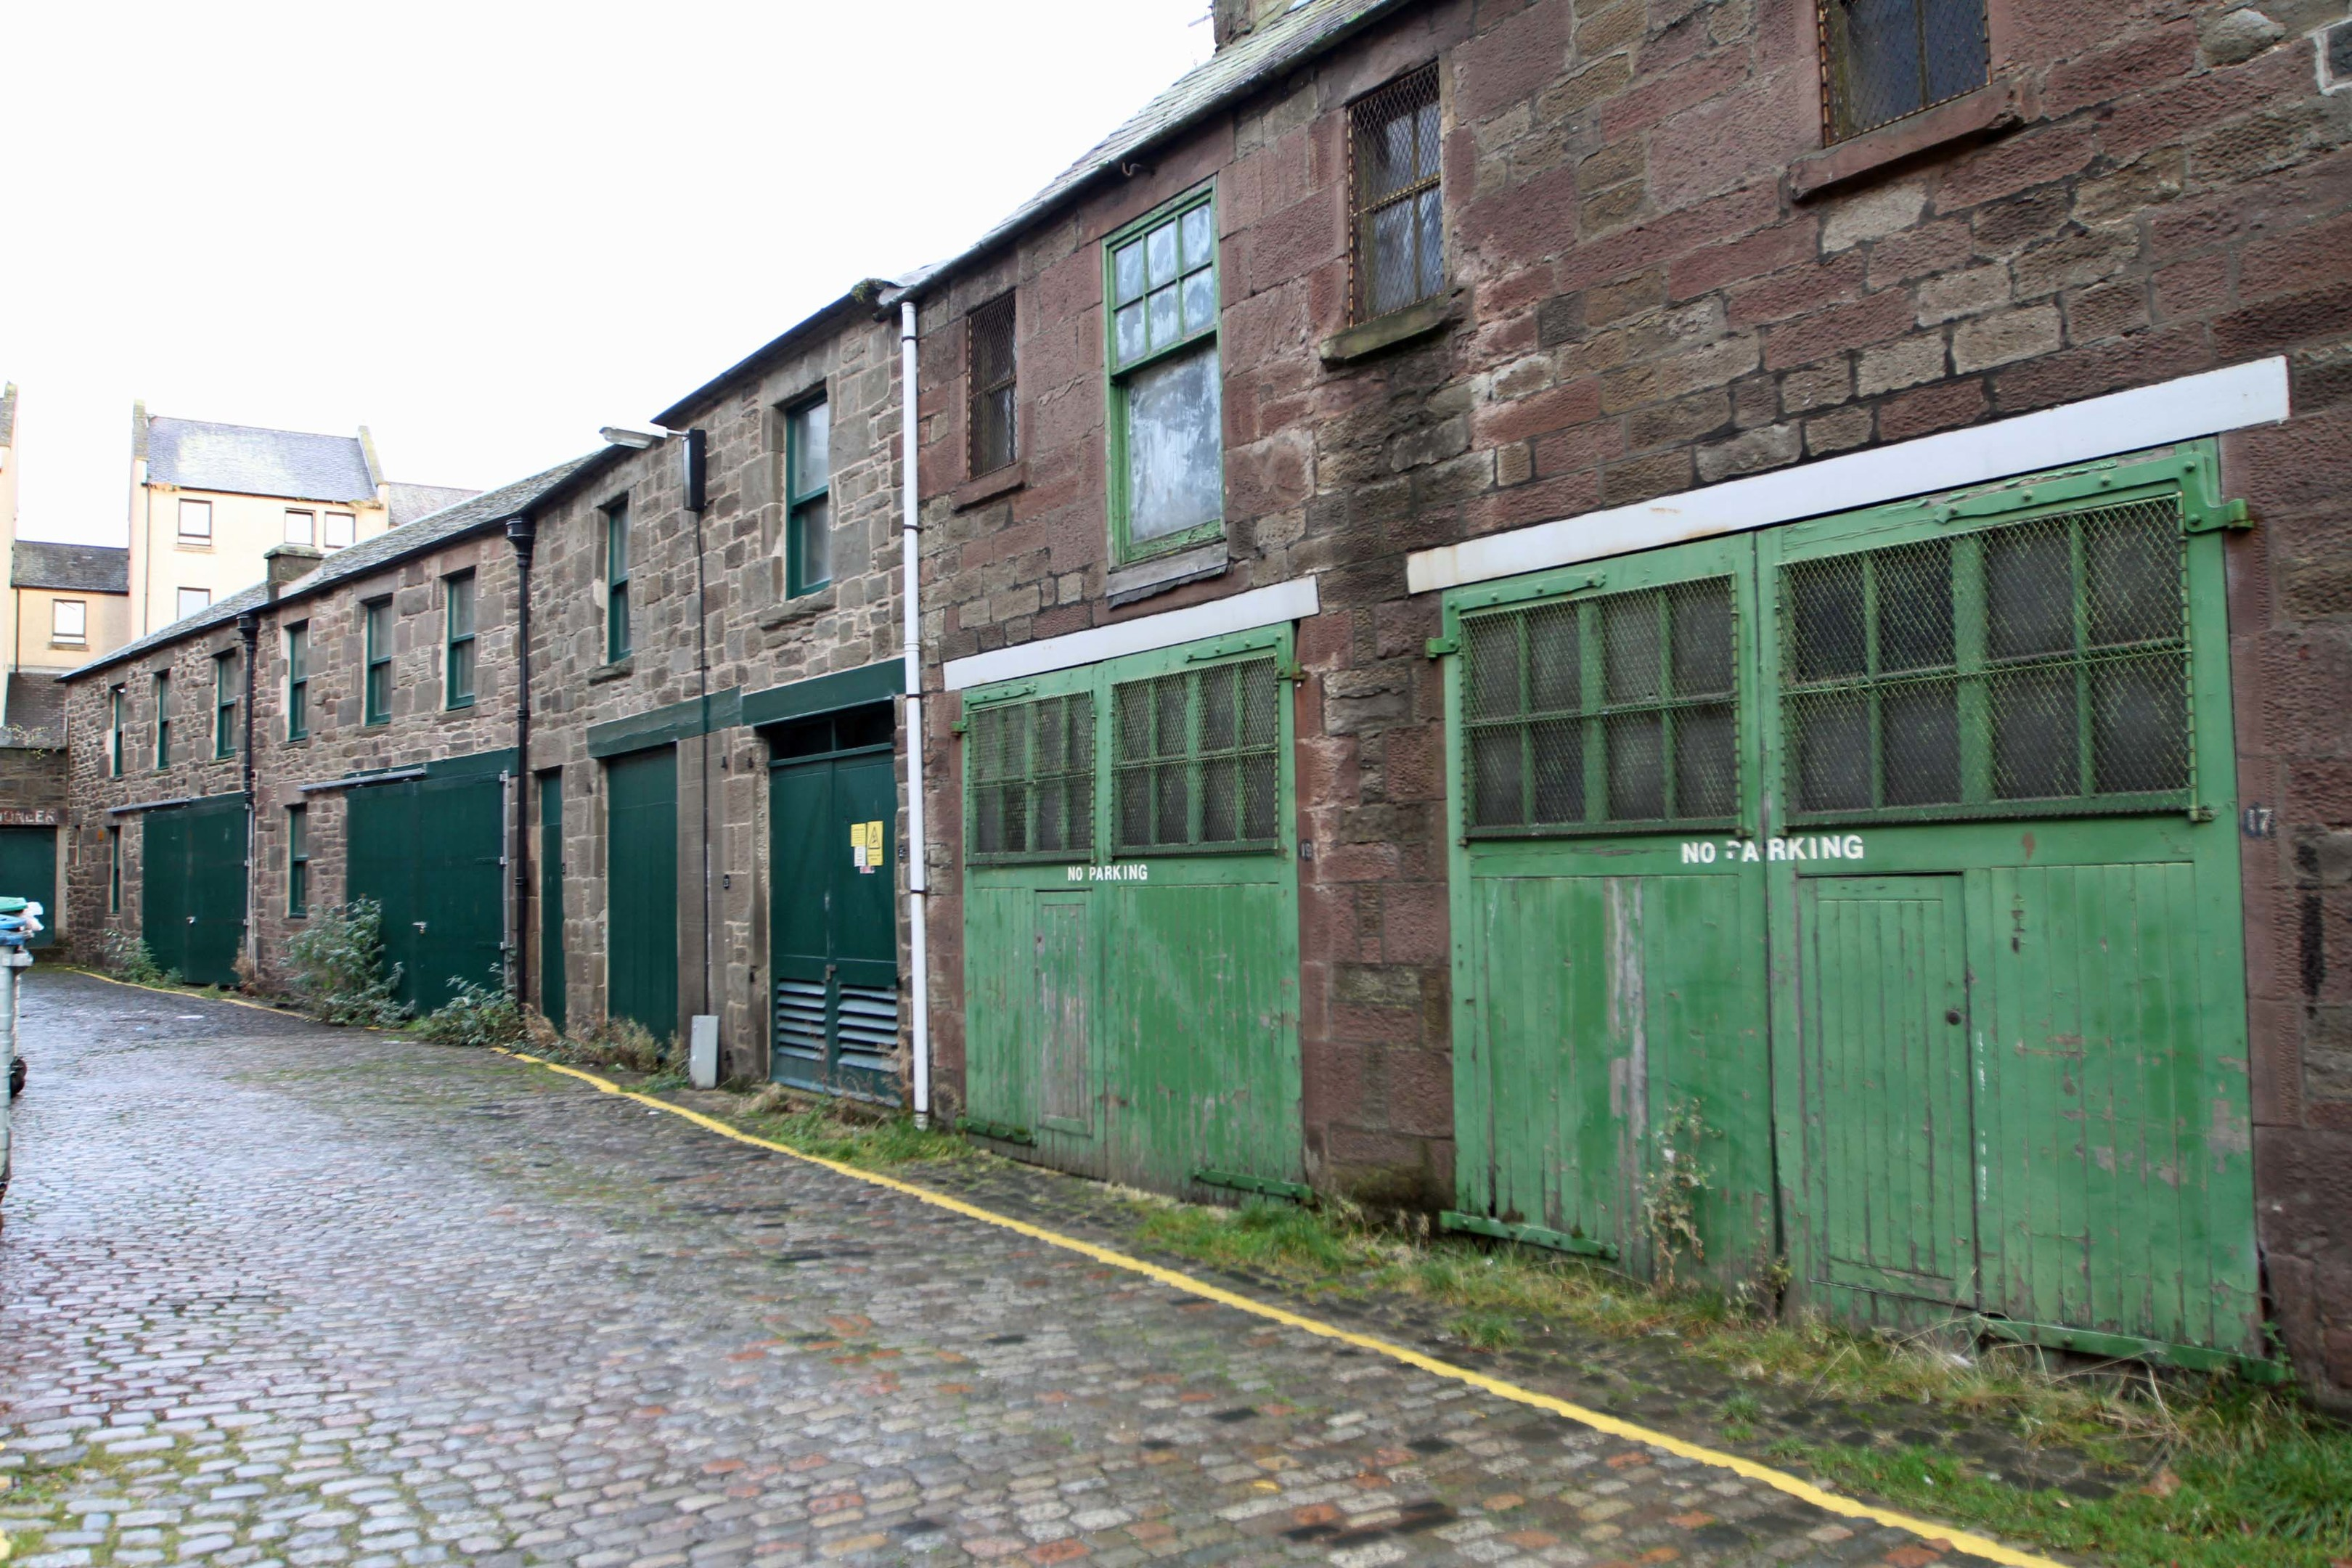 The Tay Street Lane Mews.